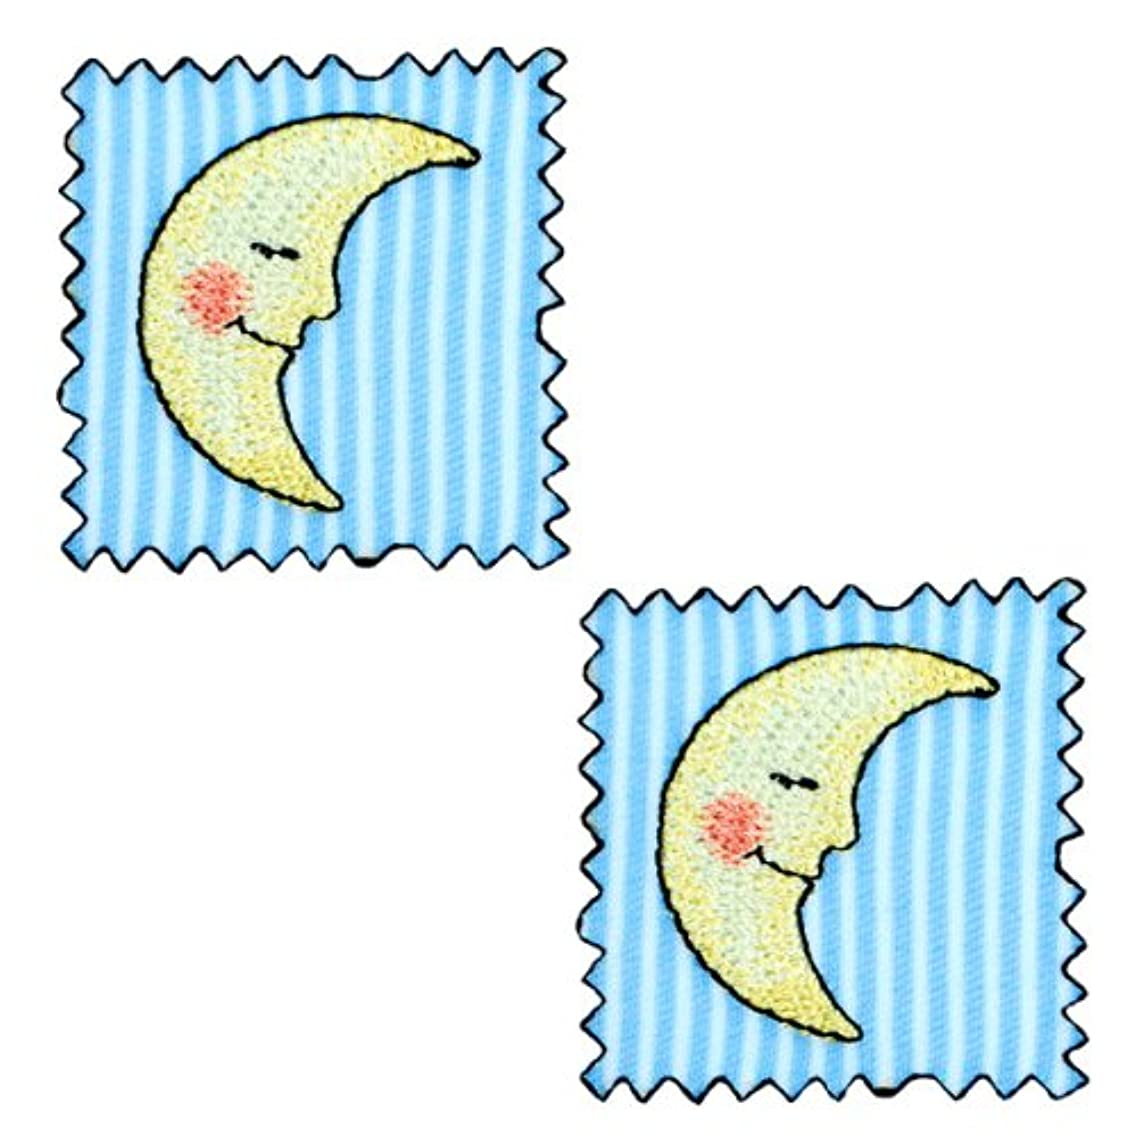 Expo Iron-on Embroidered Applique Patches, BaZooples Moon Patch, 2-Pack